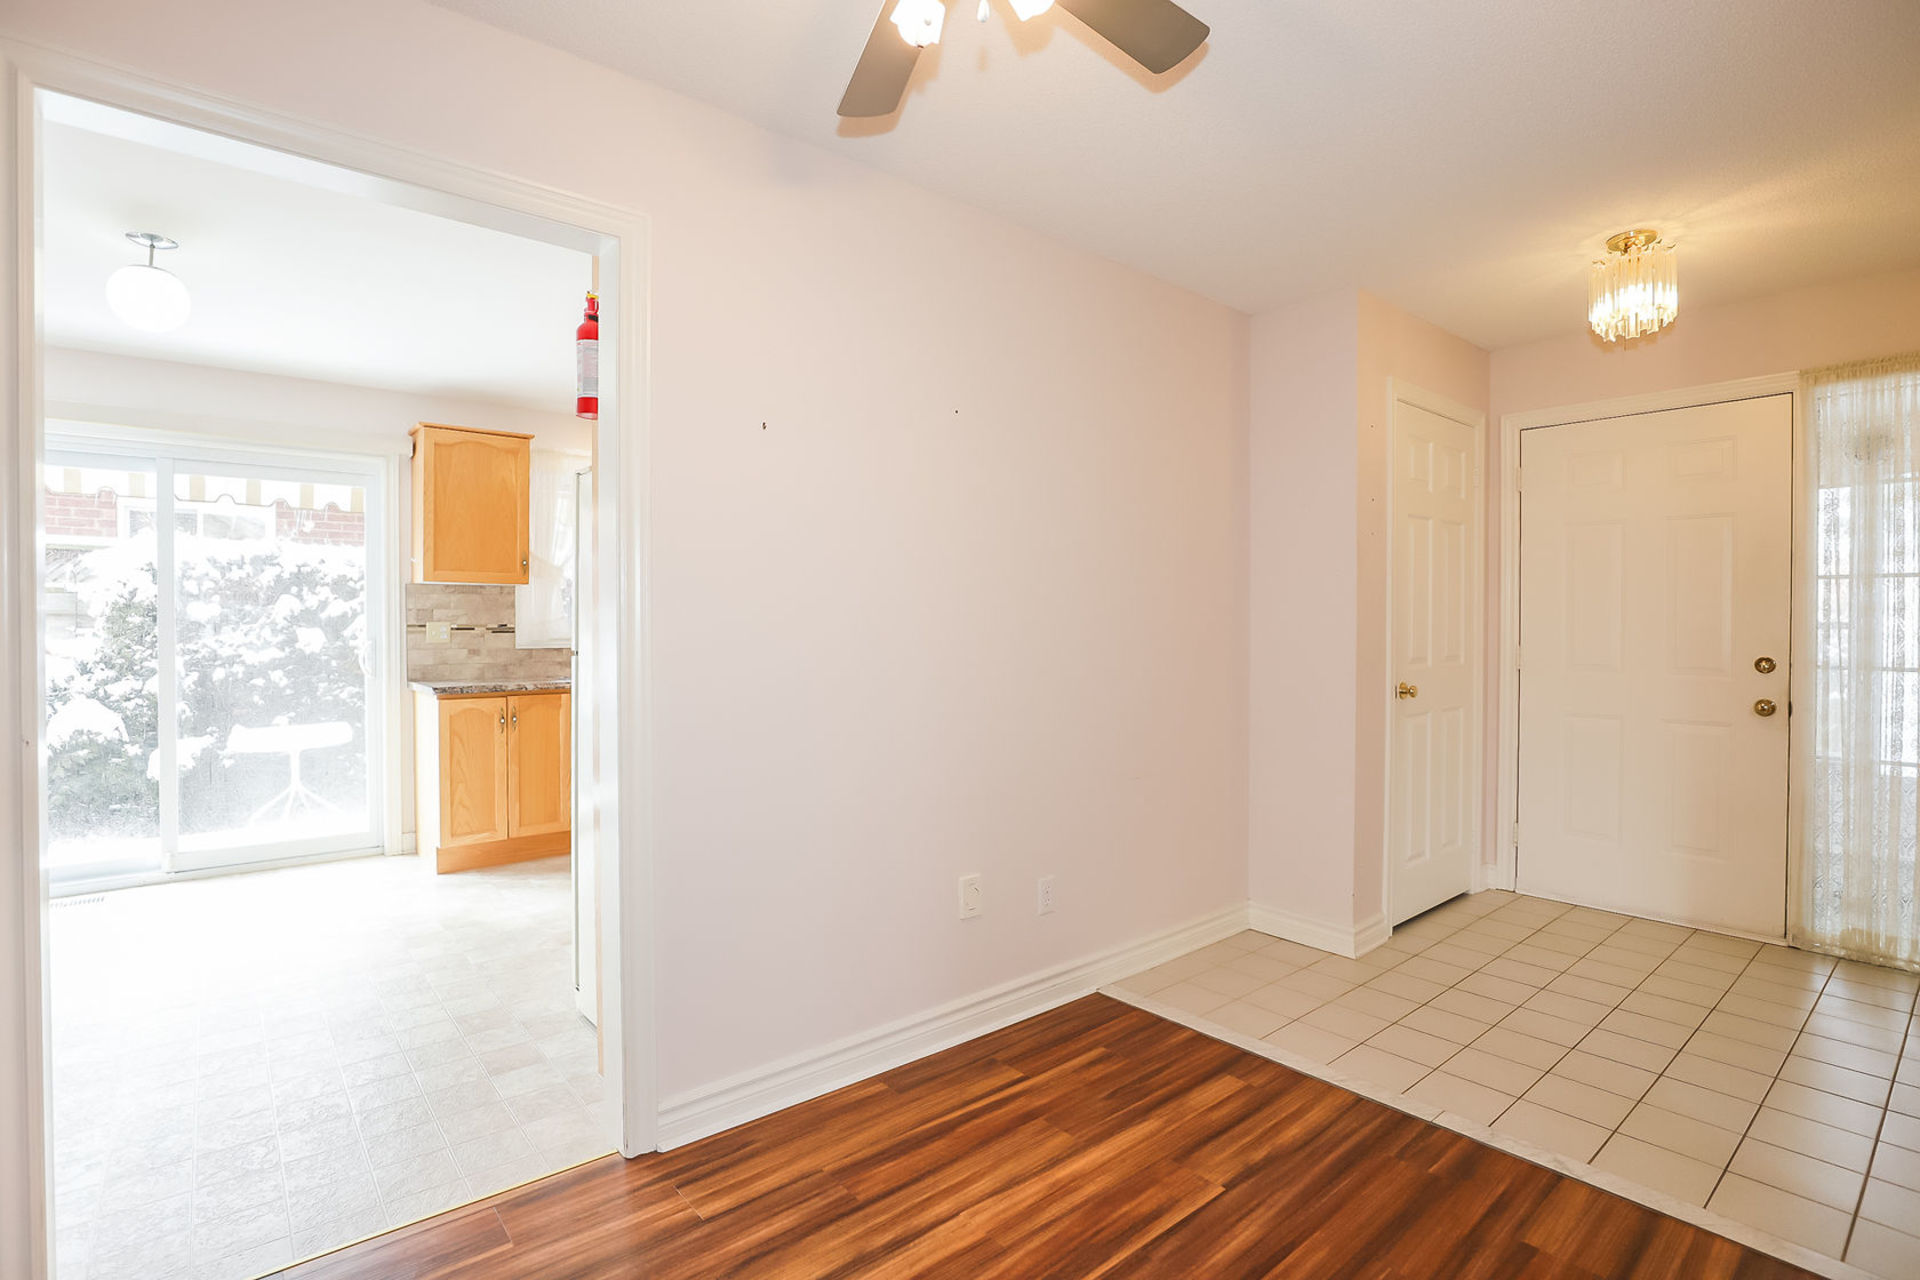 virtual-tour-292122-08 at 47 Colonial Cresent, Grimsby